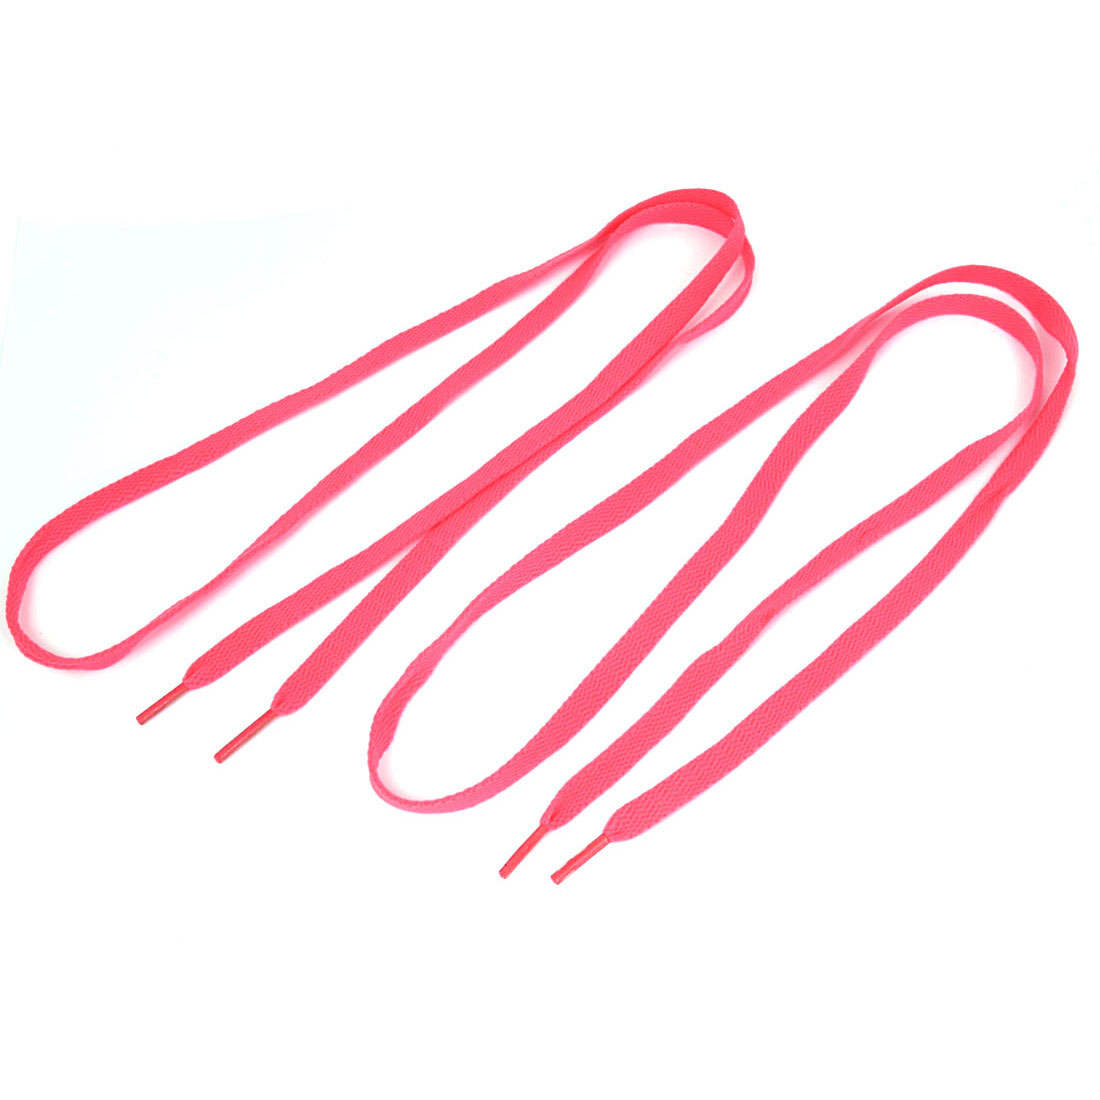 Pair Pink Plastic Tip Flat Shoelaces Shoe Lace String for Sports Shoes Boots Sneakers Skates